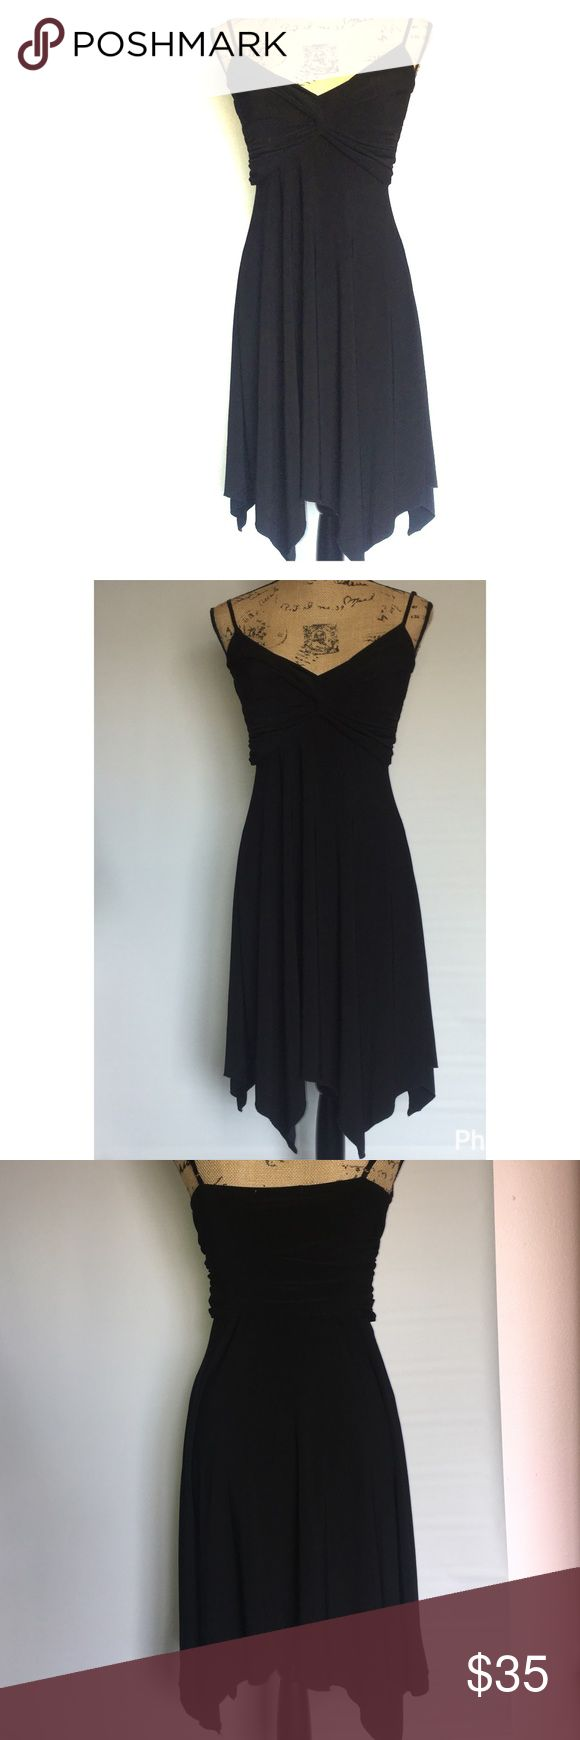 📌PRICE REDUCED 📌 Charlotte Russe black dress Charlottes Russe black dress size small prom Little black dress uneven bottom Charlotte Russe Dresses Prom